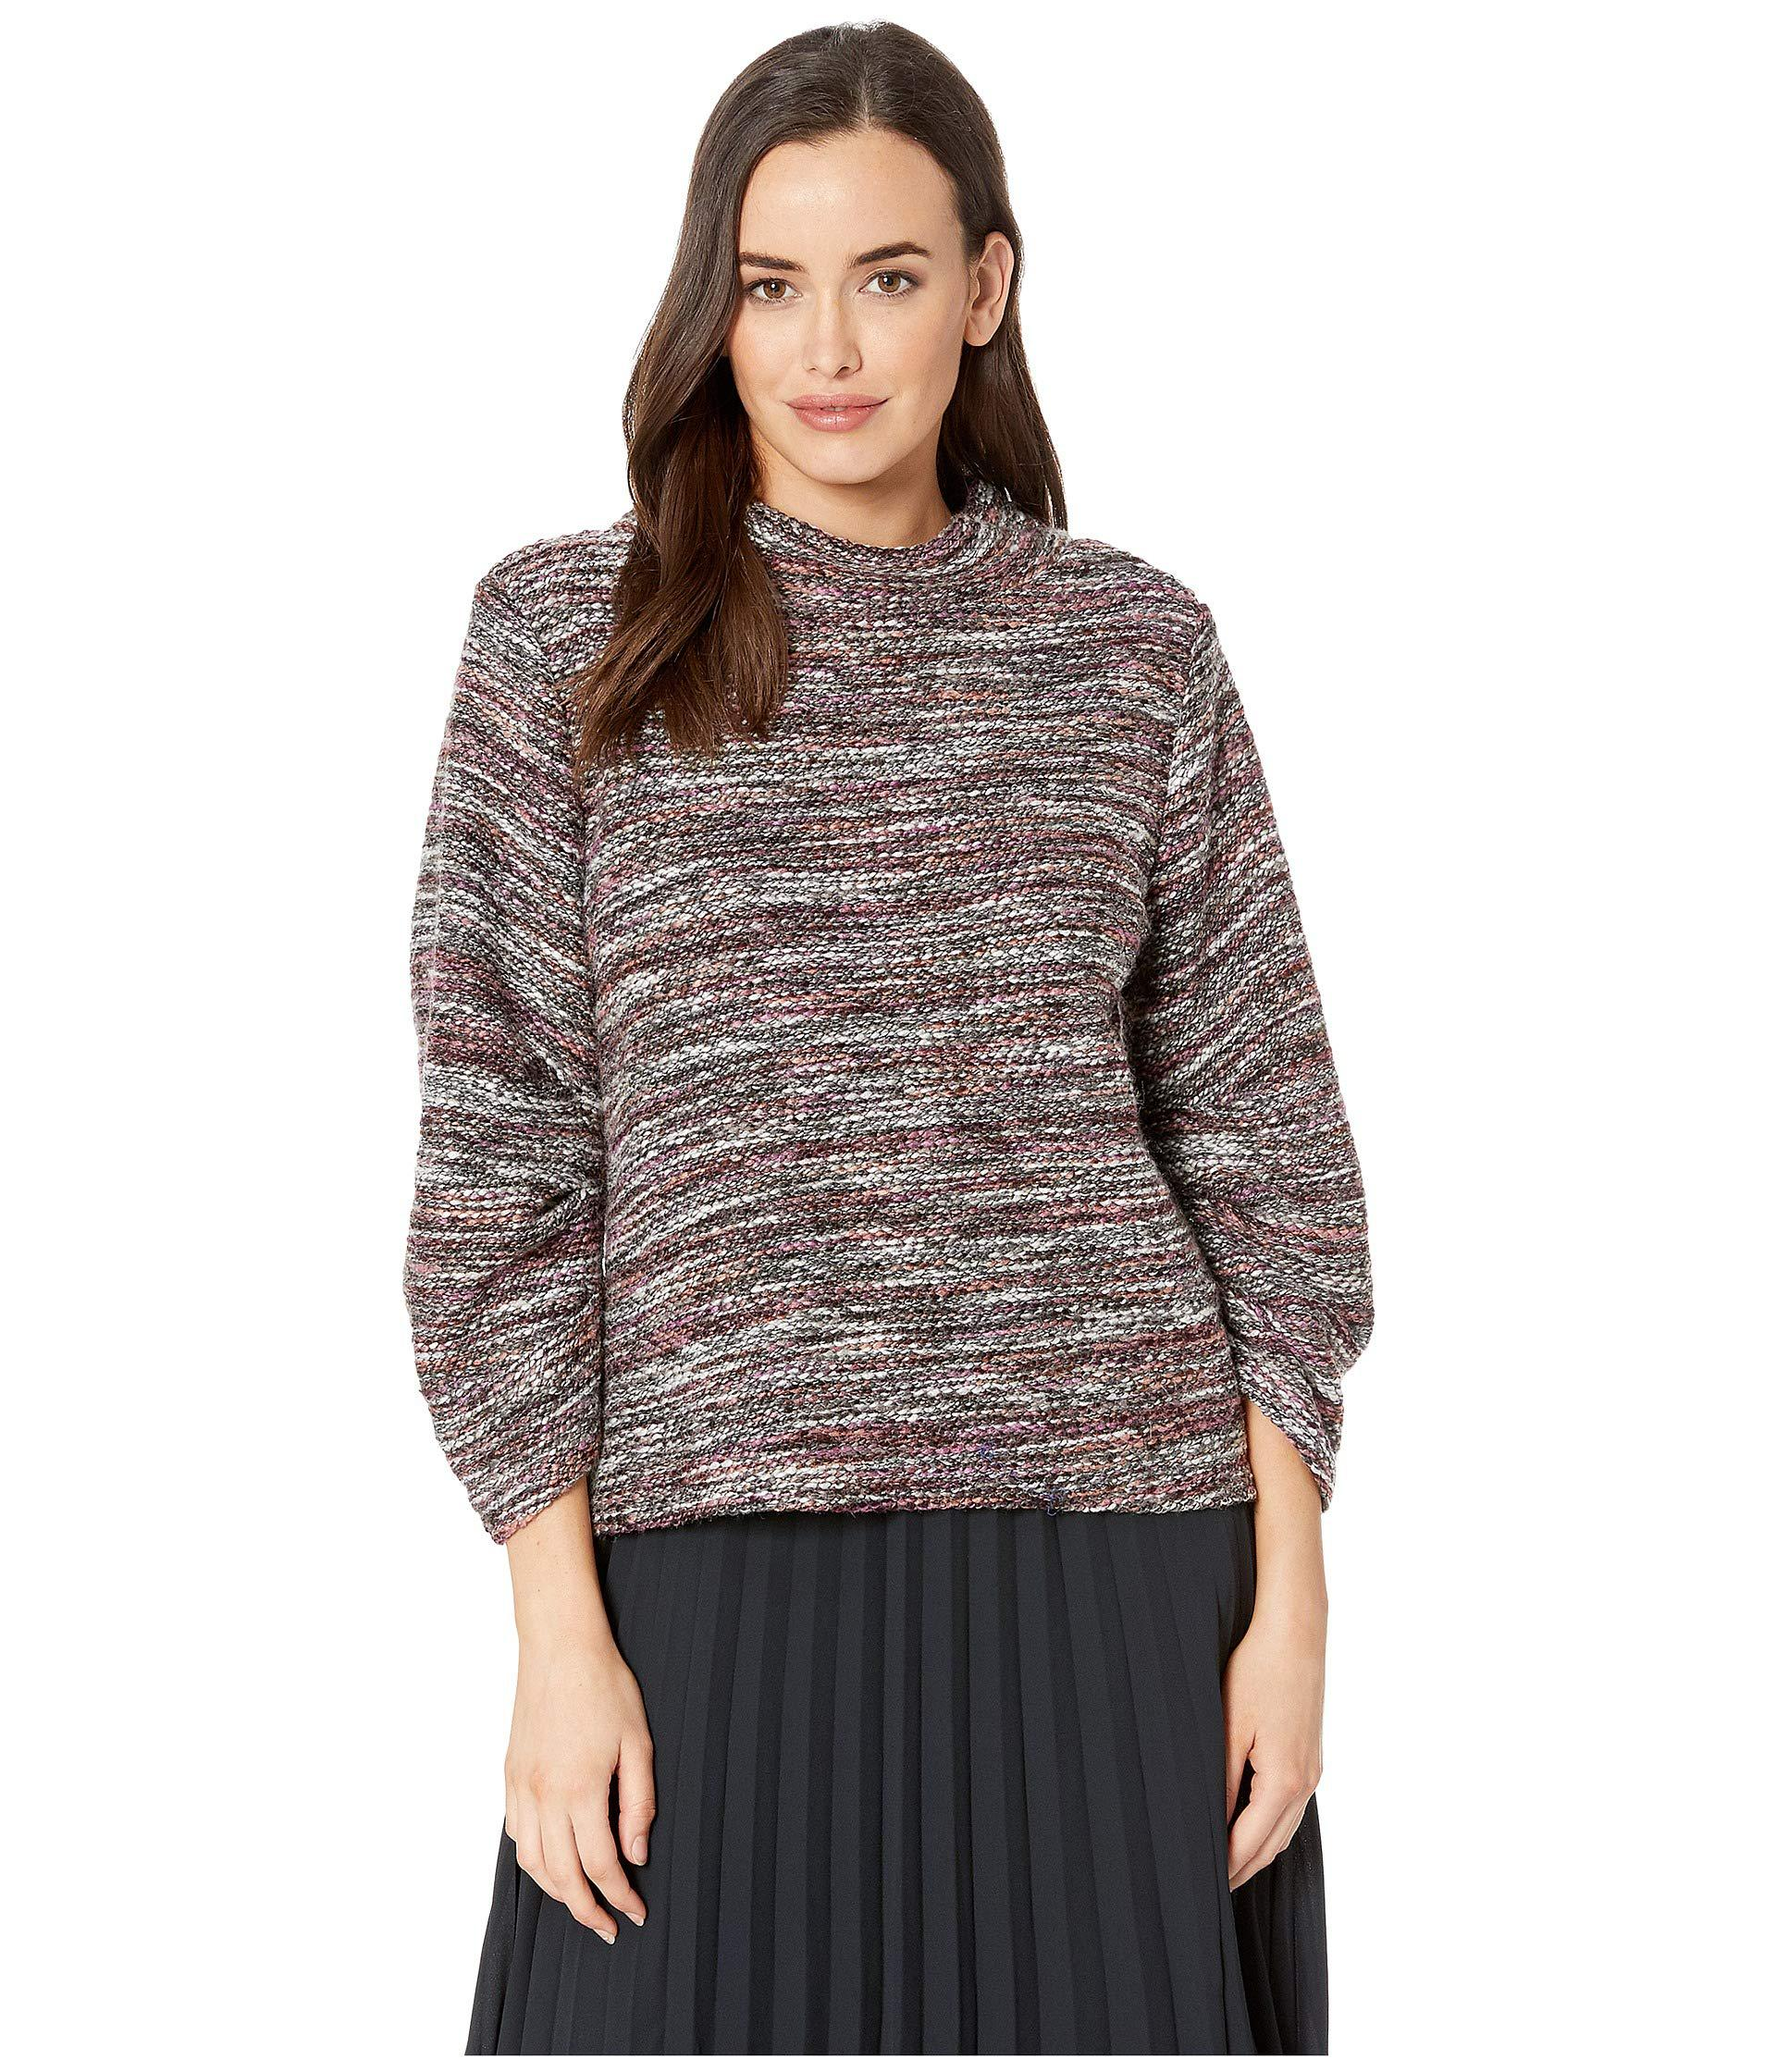 Camuto Neck Gathered Mock Multicolor Boucle Lyst Top Vince Sleeve O1xqPA